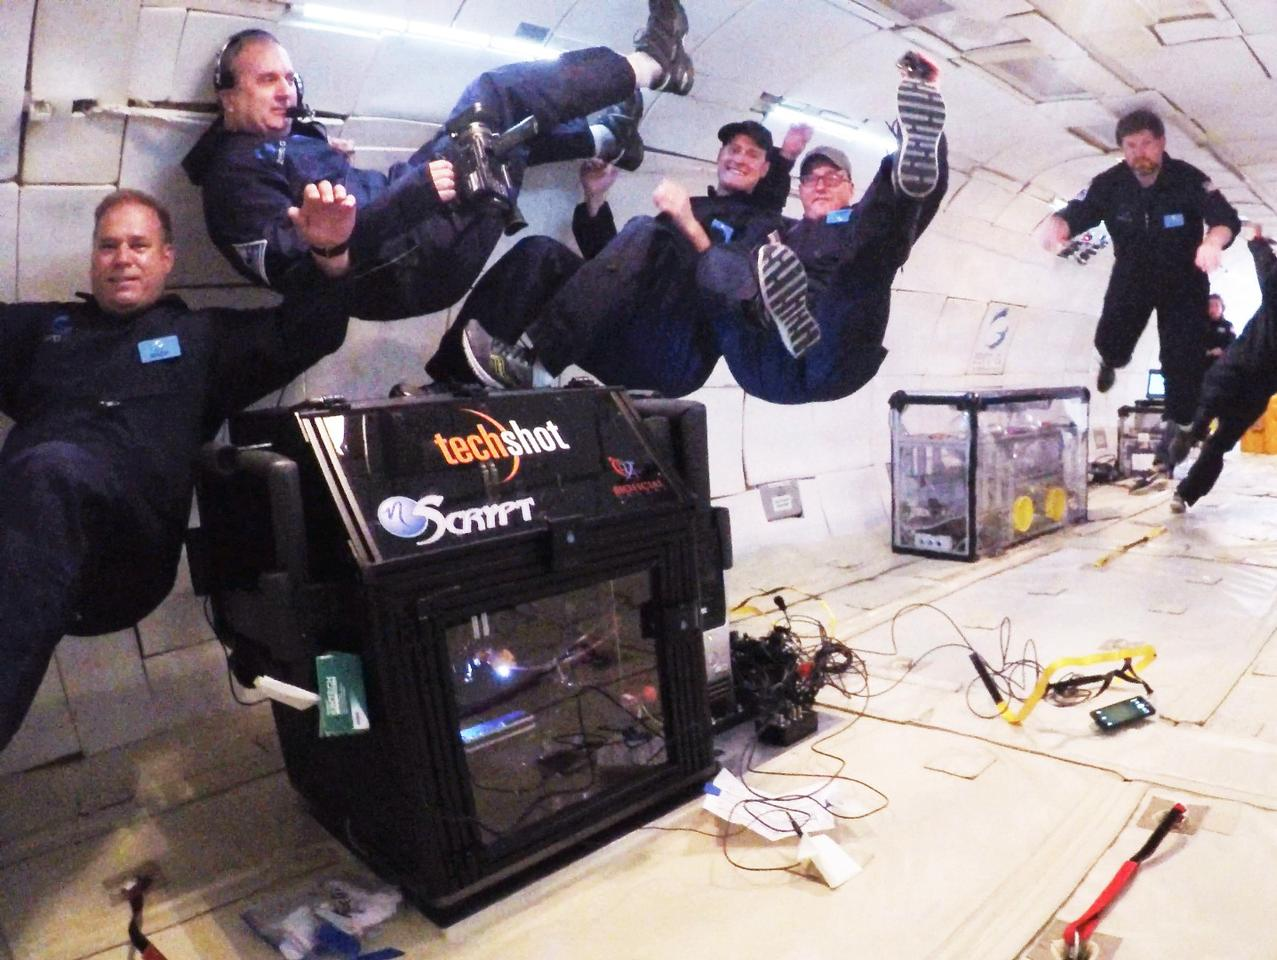 While the bioprinter stayed attached to the zero-gravity-simulating plane as it worked, the same can't be said for the crew